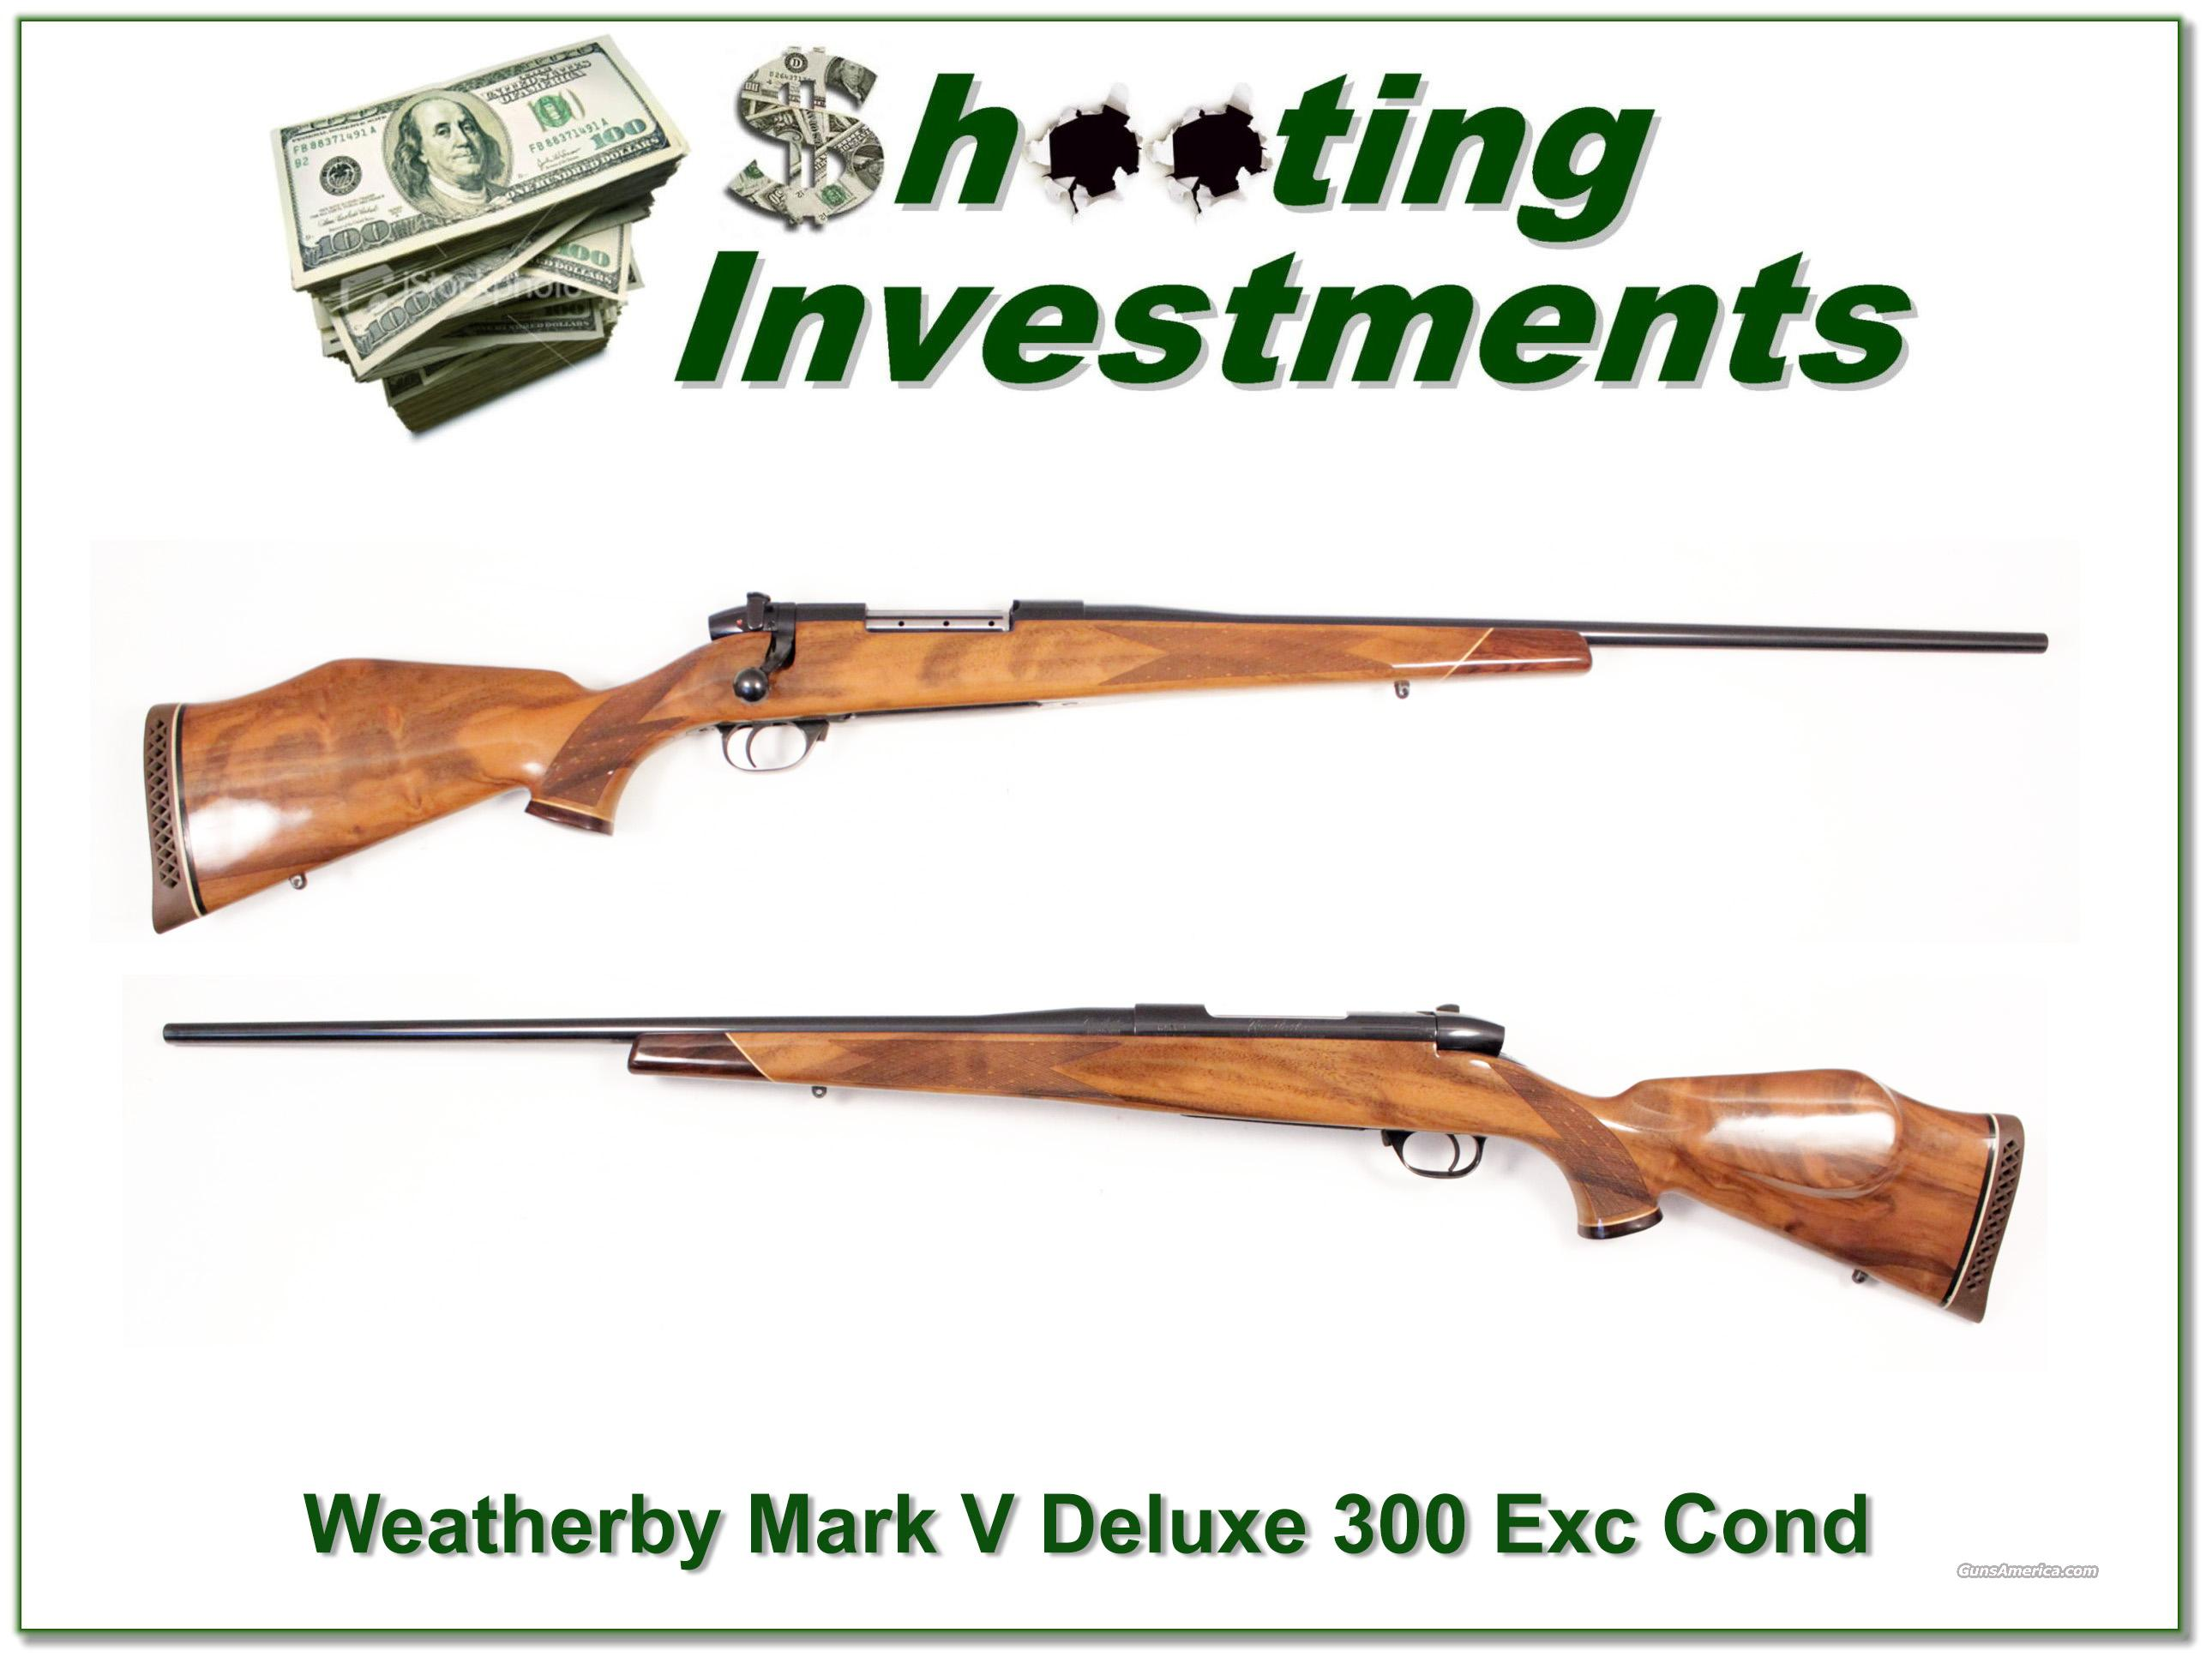 Weatherby Mark V Deluxe 300 Exc Wood!  Guns > Rifles > Weatherby Rifles > Sporting